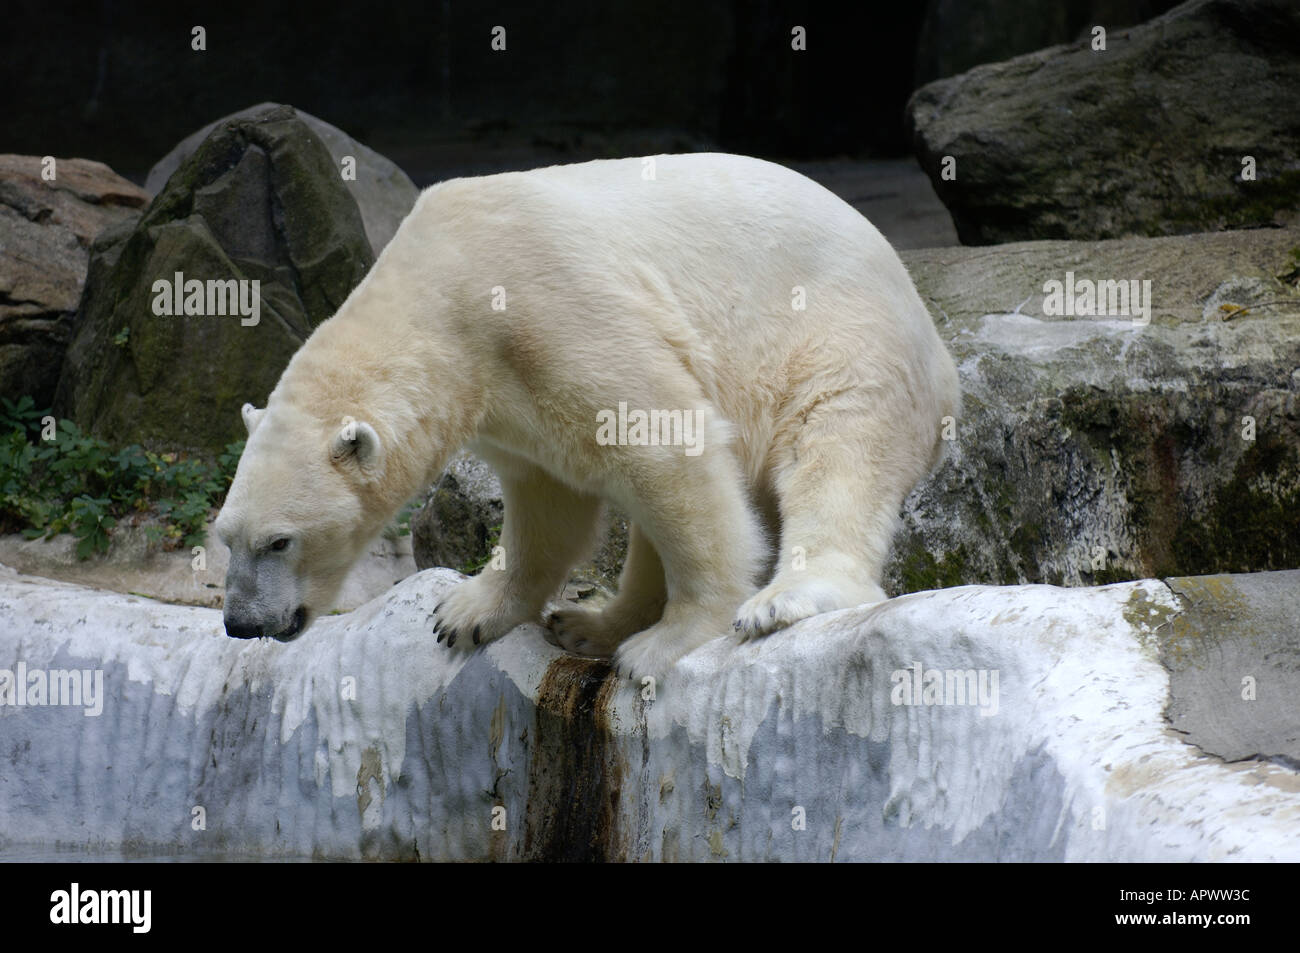 Polar bear gets ready to take a plunge in the pool at the Bronx Zoo in New York - Stock Image